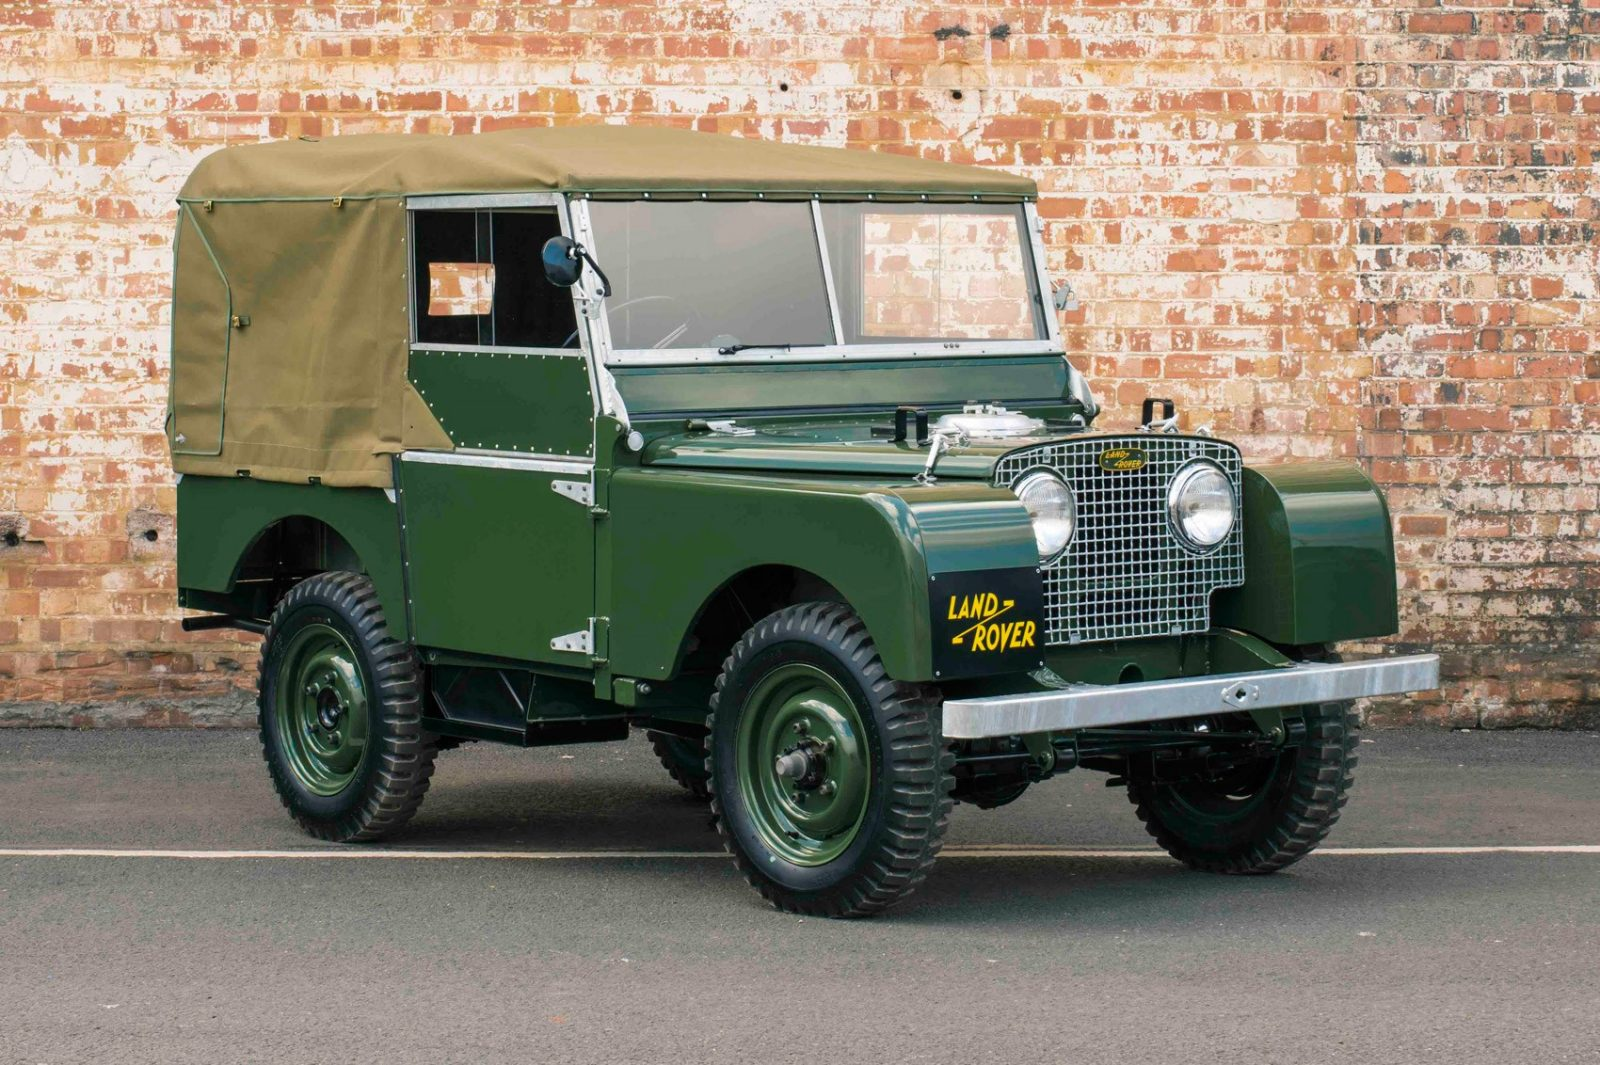 Land rover one photo - 4